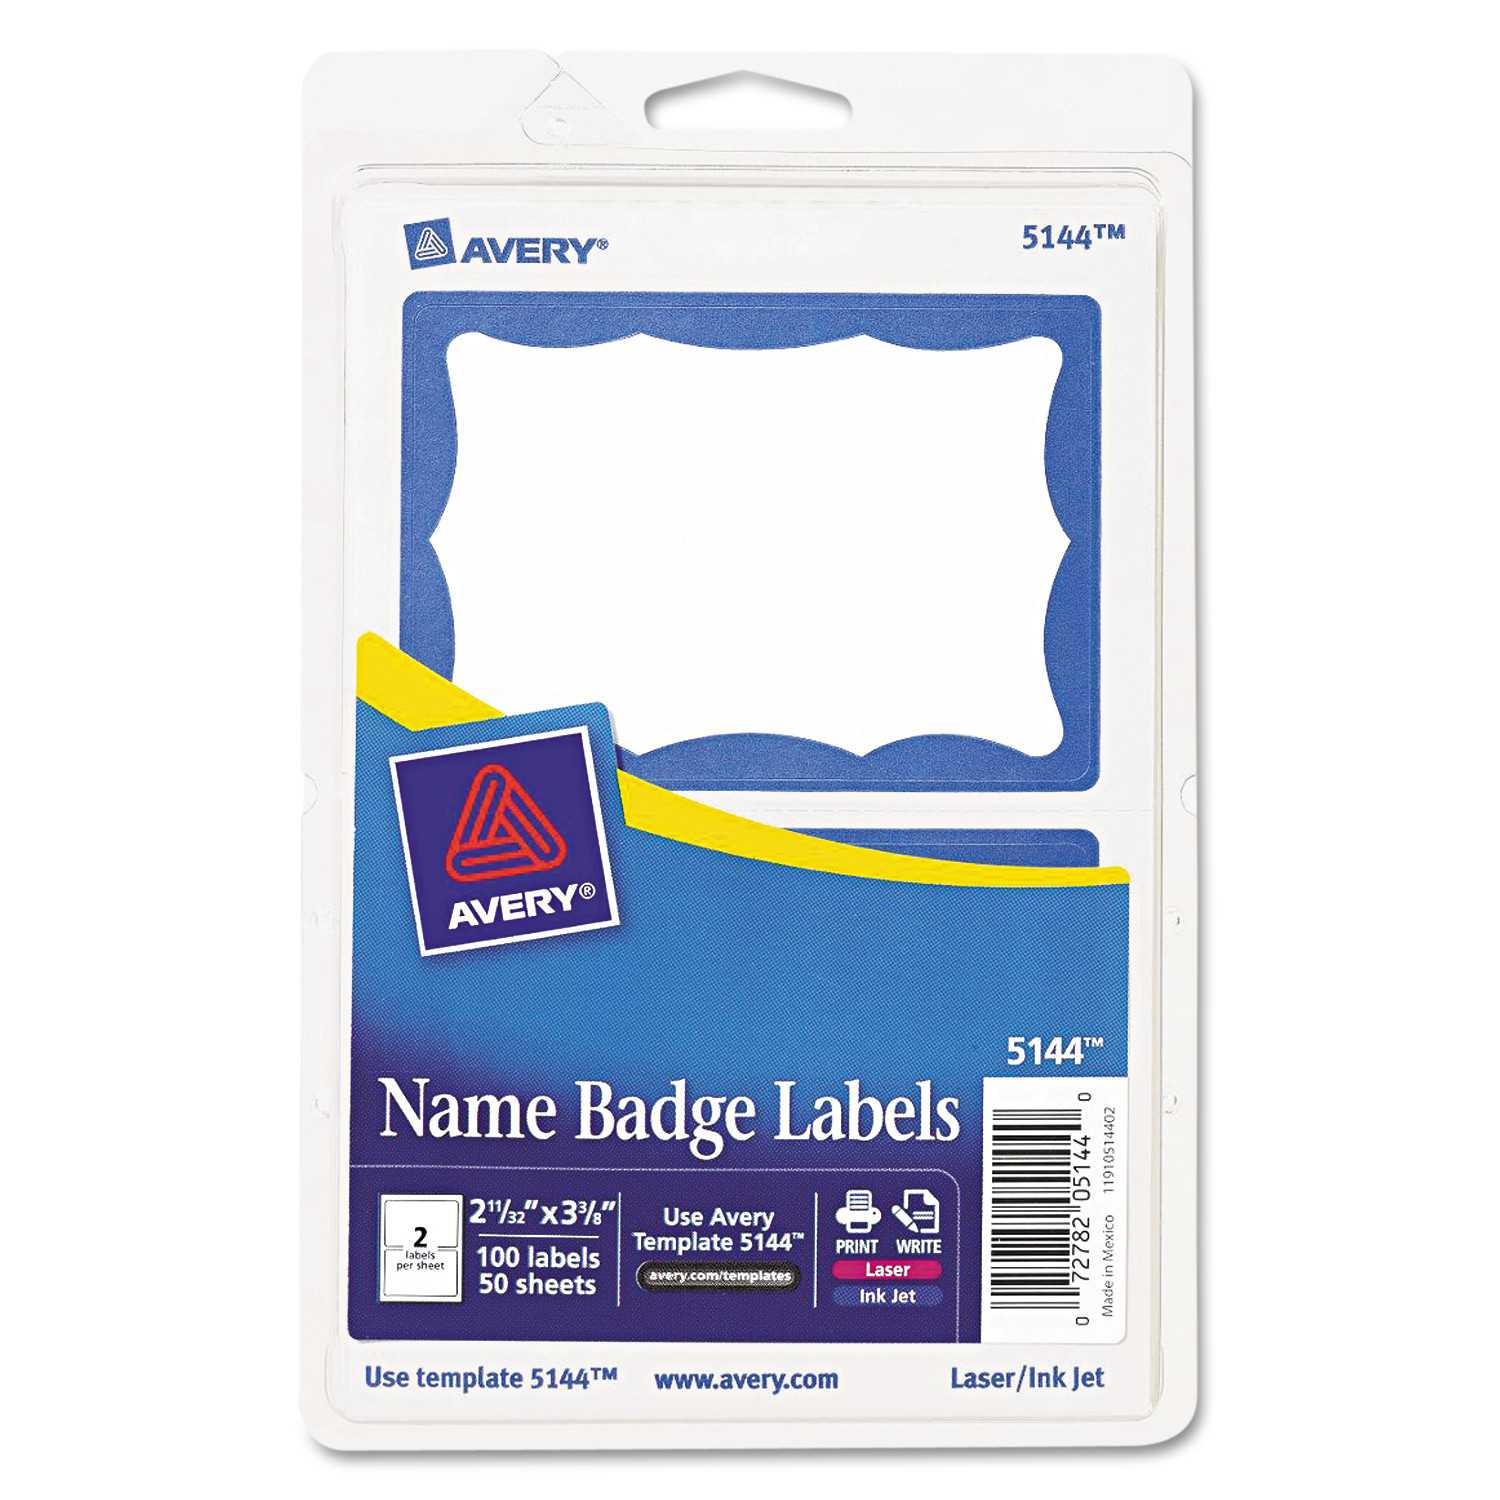 Avery Printable Self-Adhesive Name Badges, 2 1/3 X 3 3/8, Blue